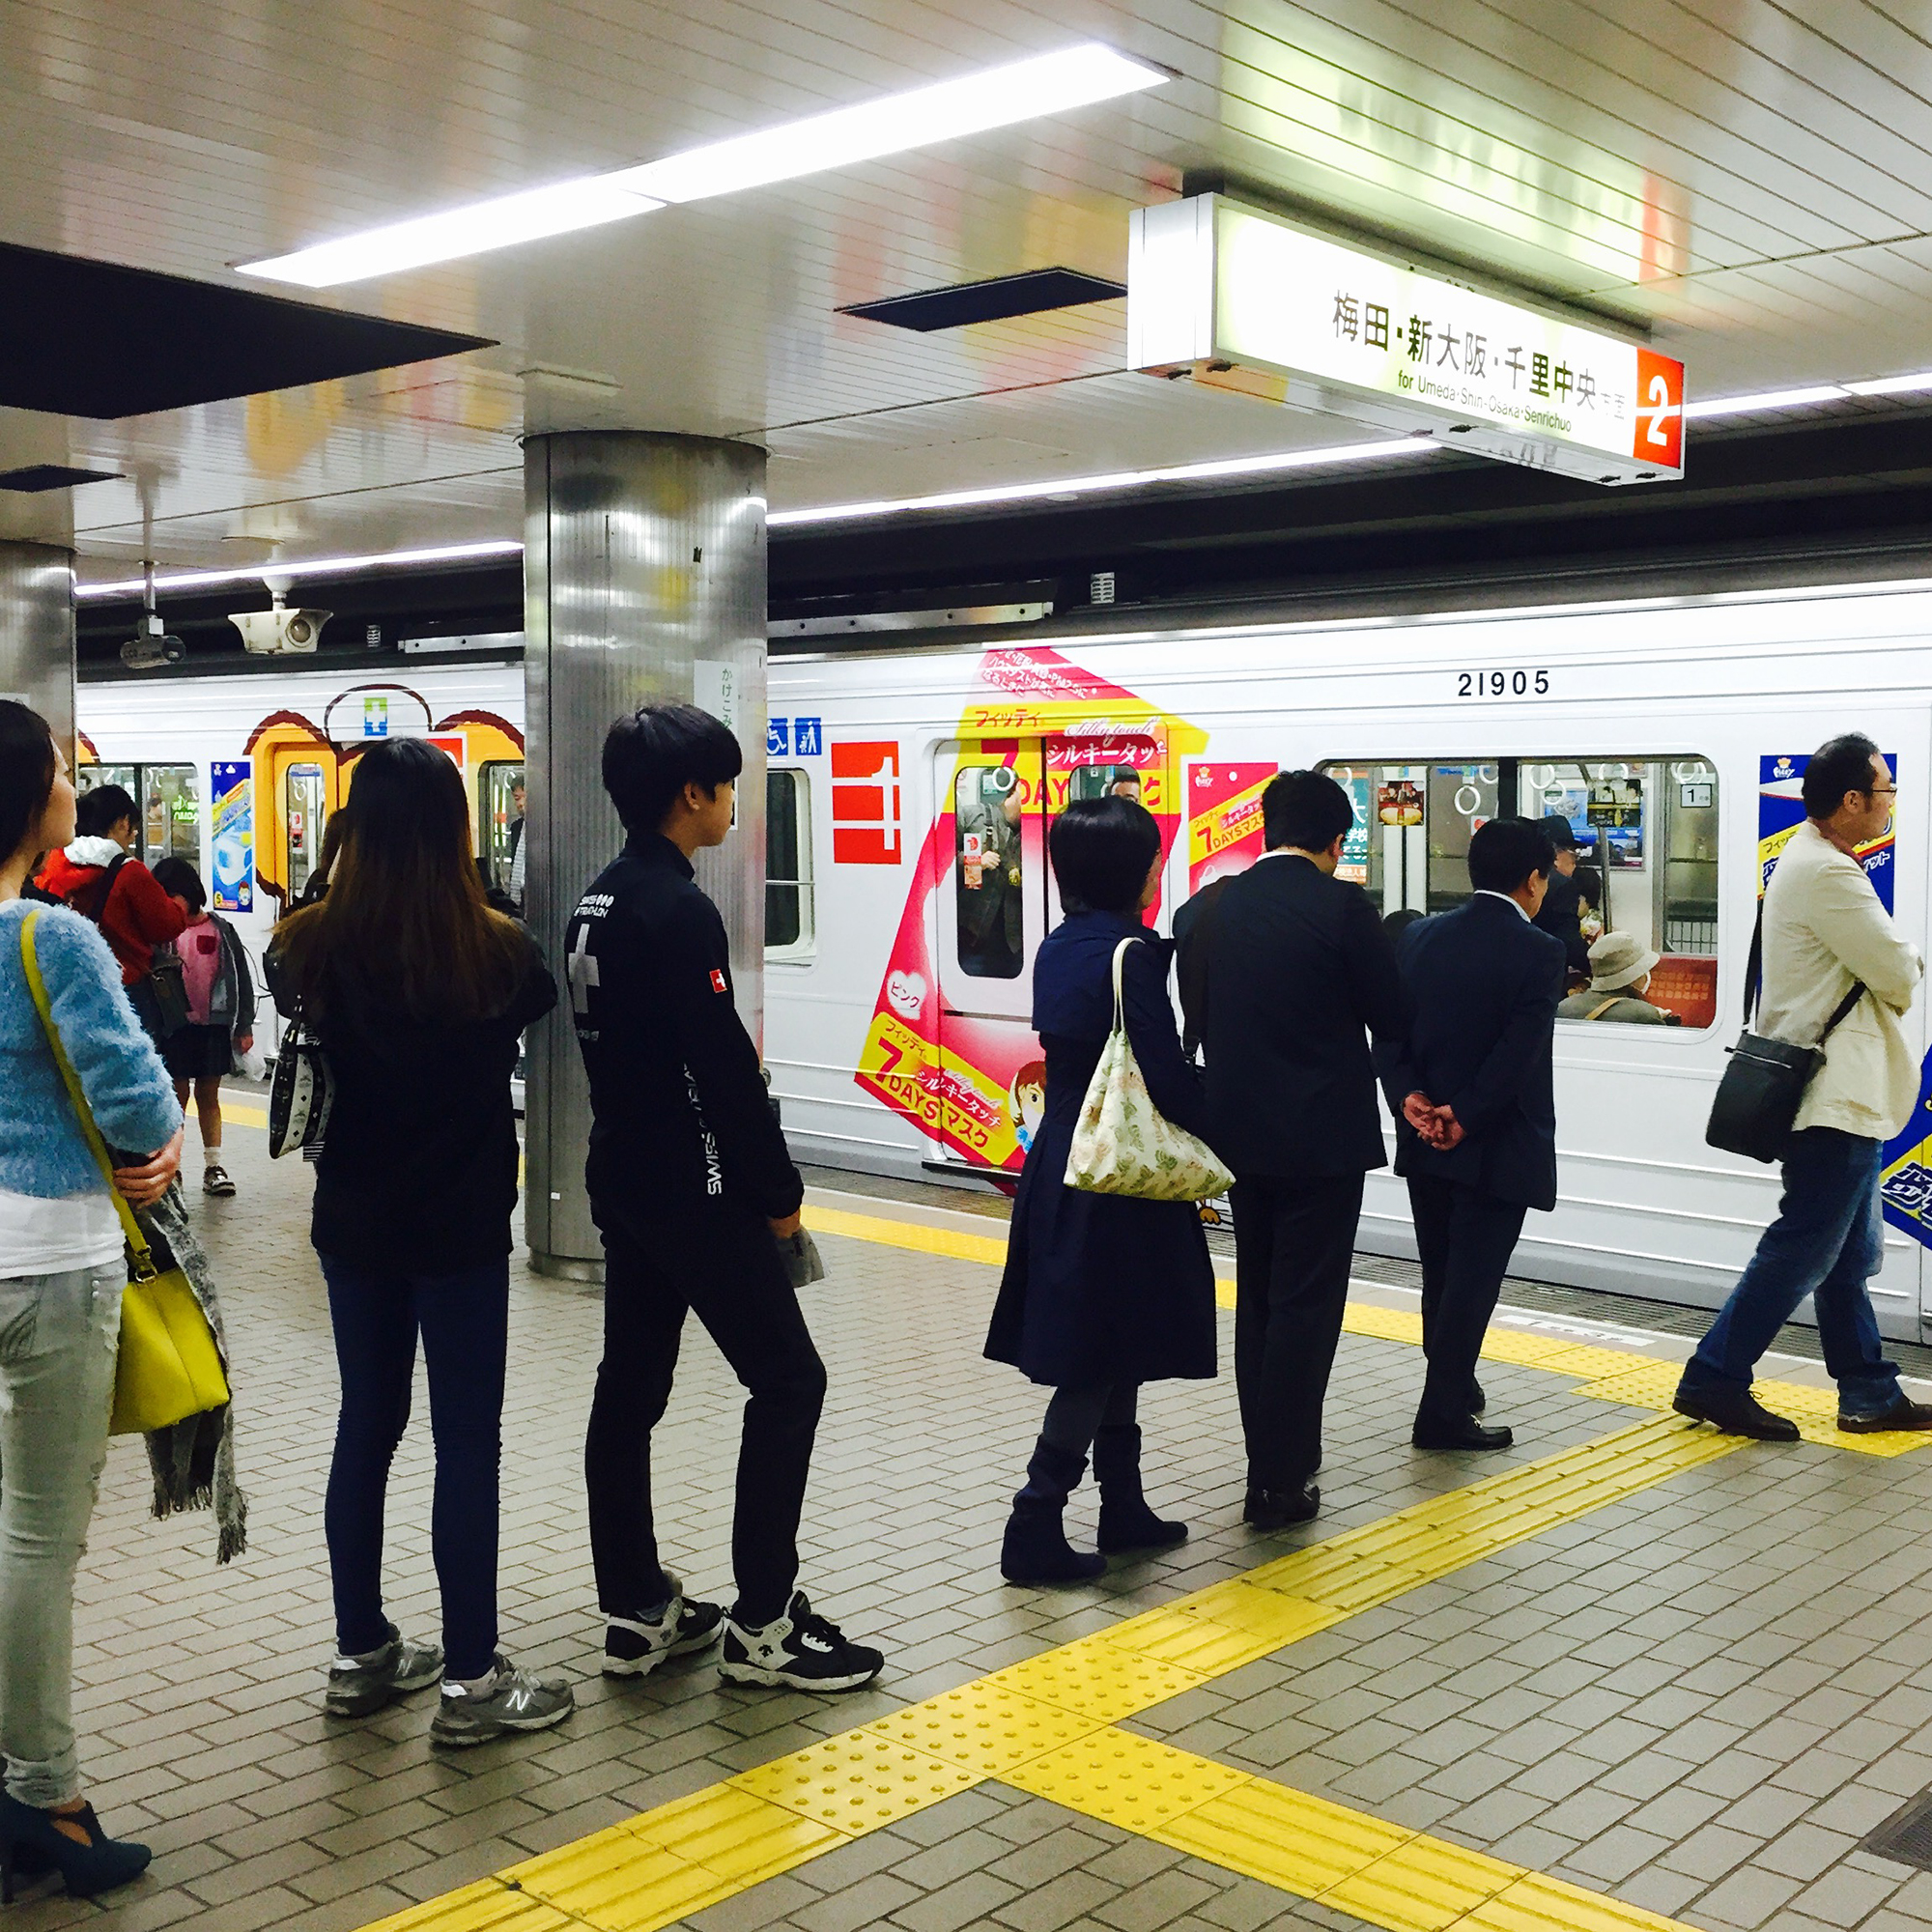 There's a specific queuing etiquette at Japan's stations.